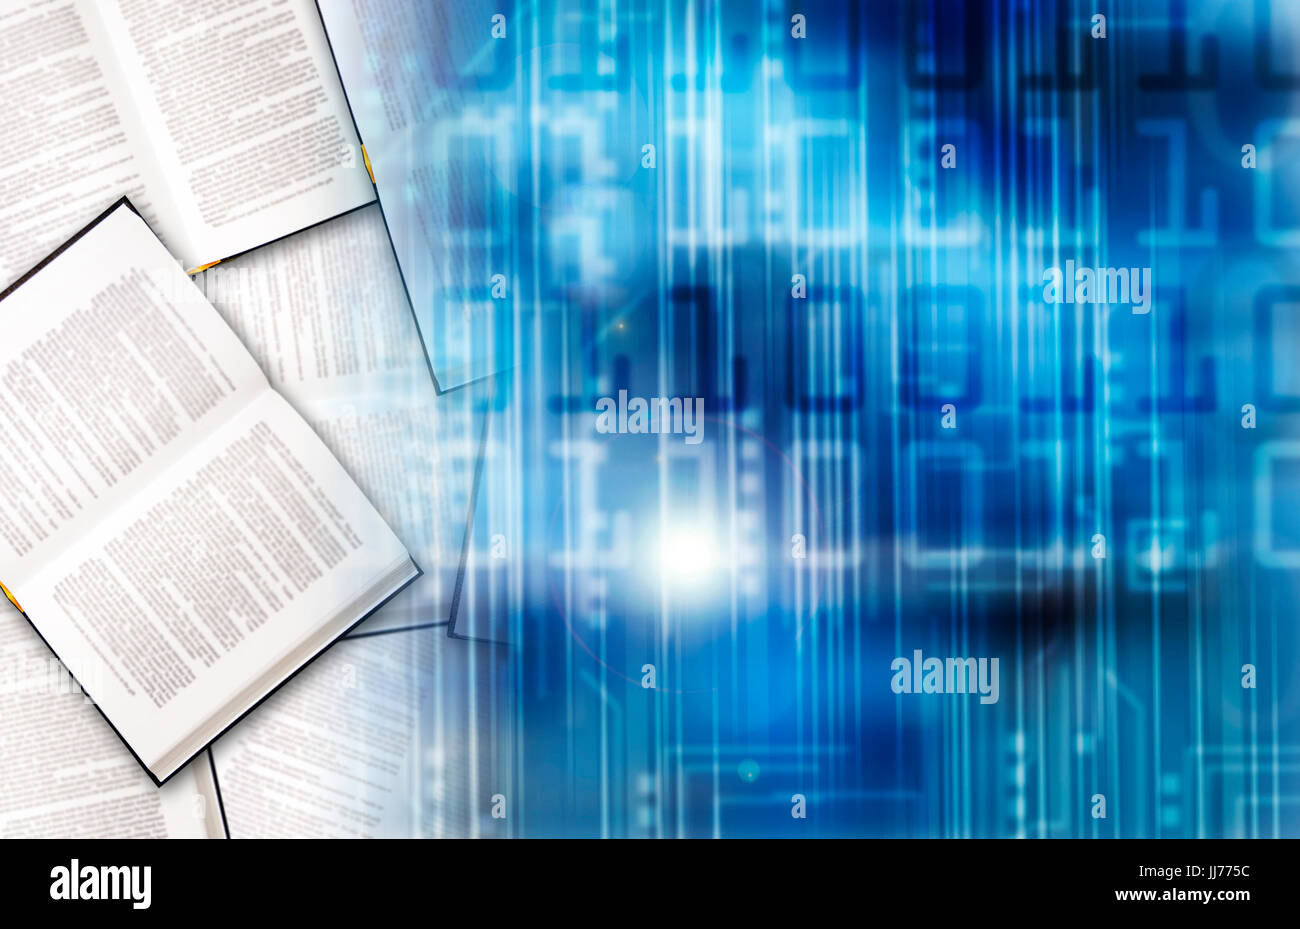 electronic book concept - Stock Image